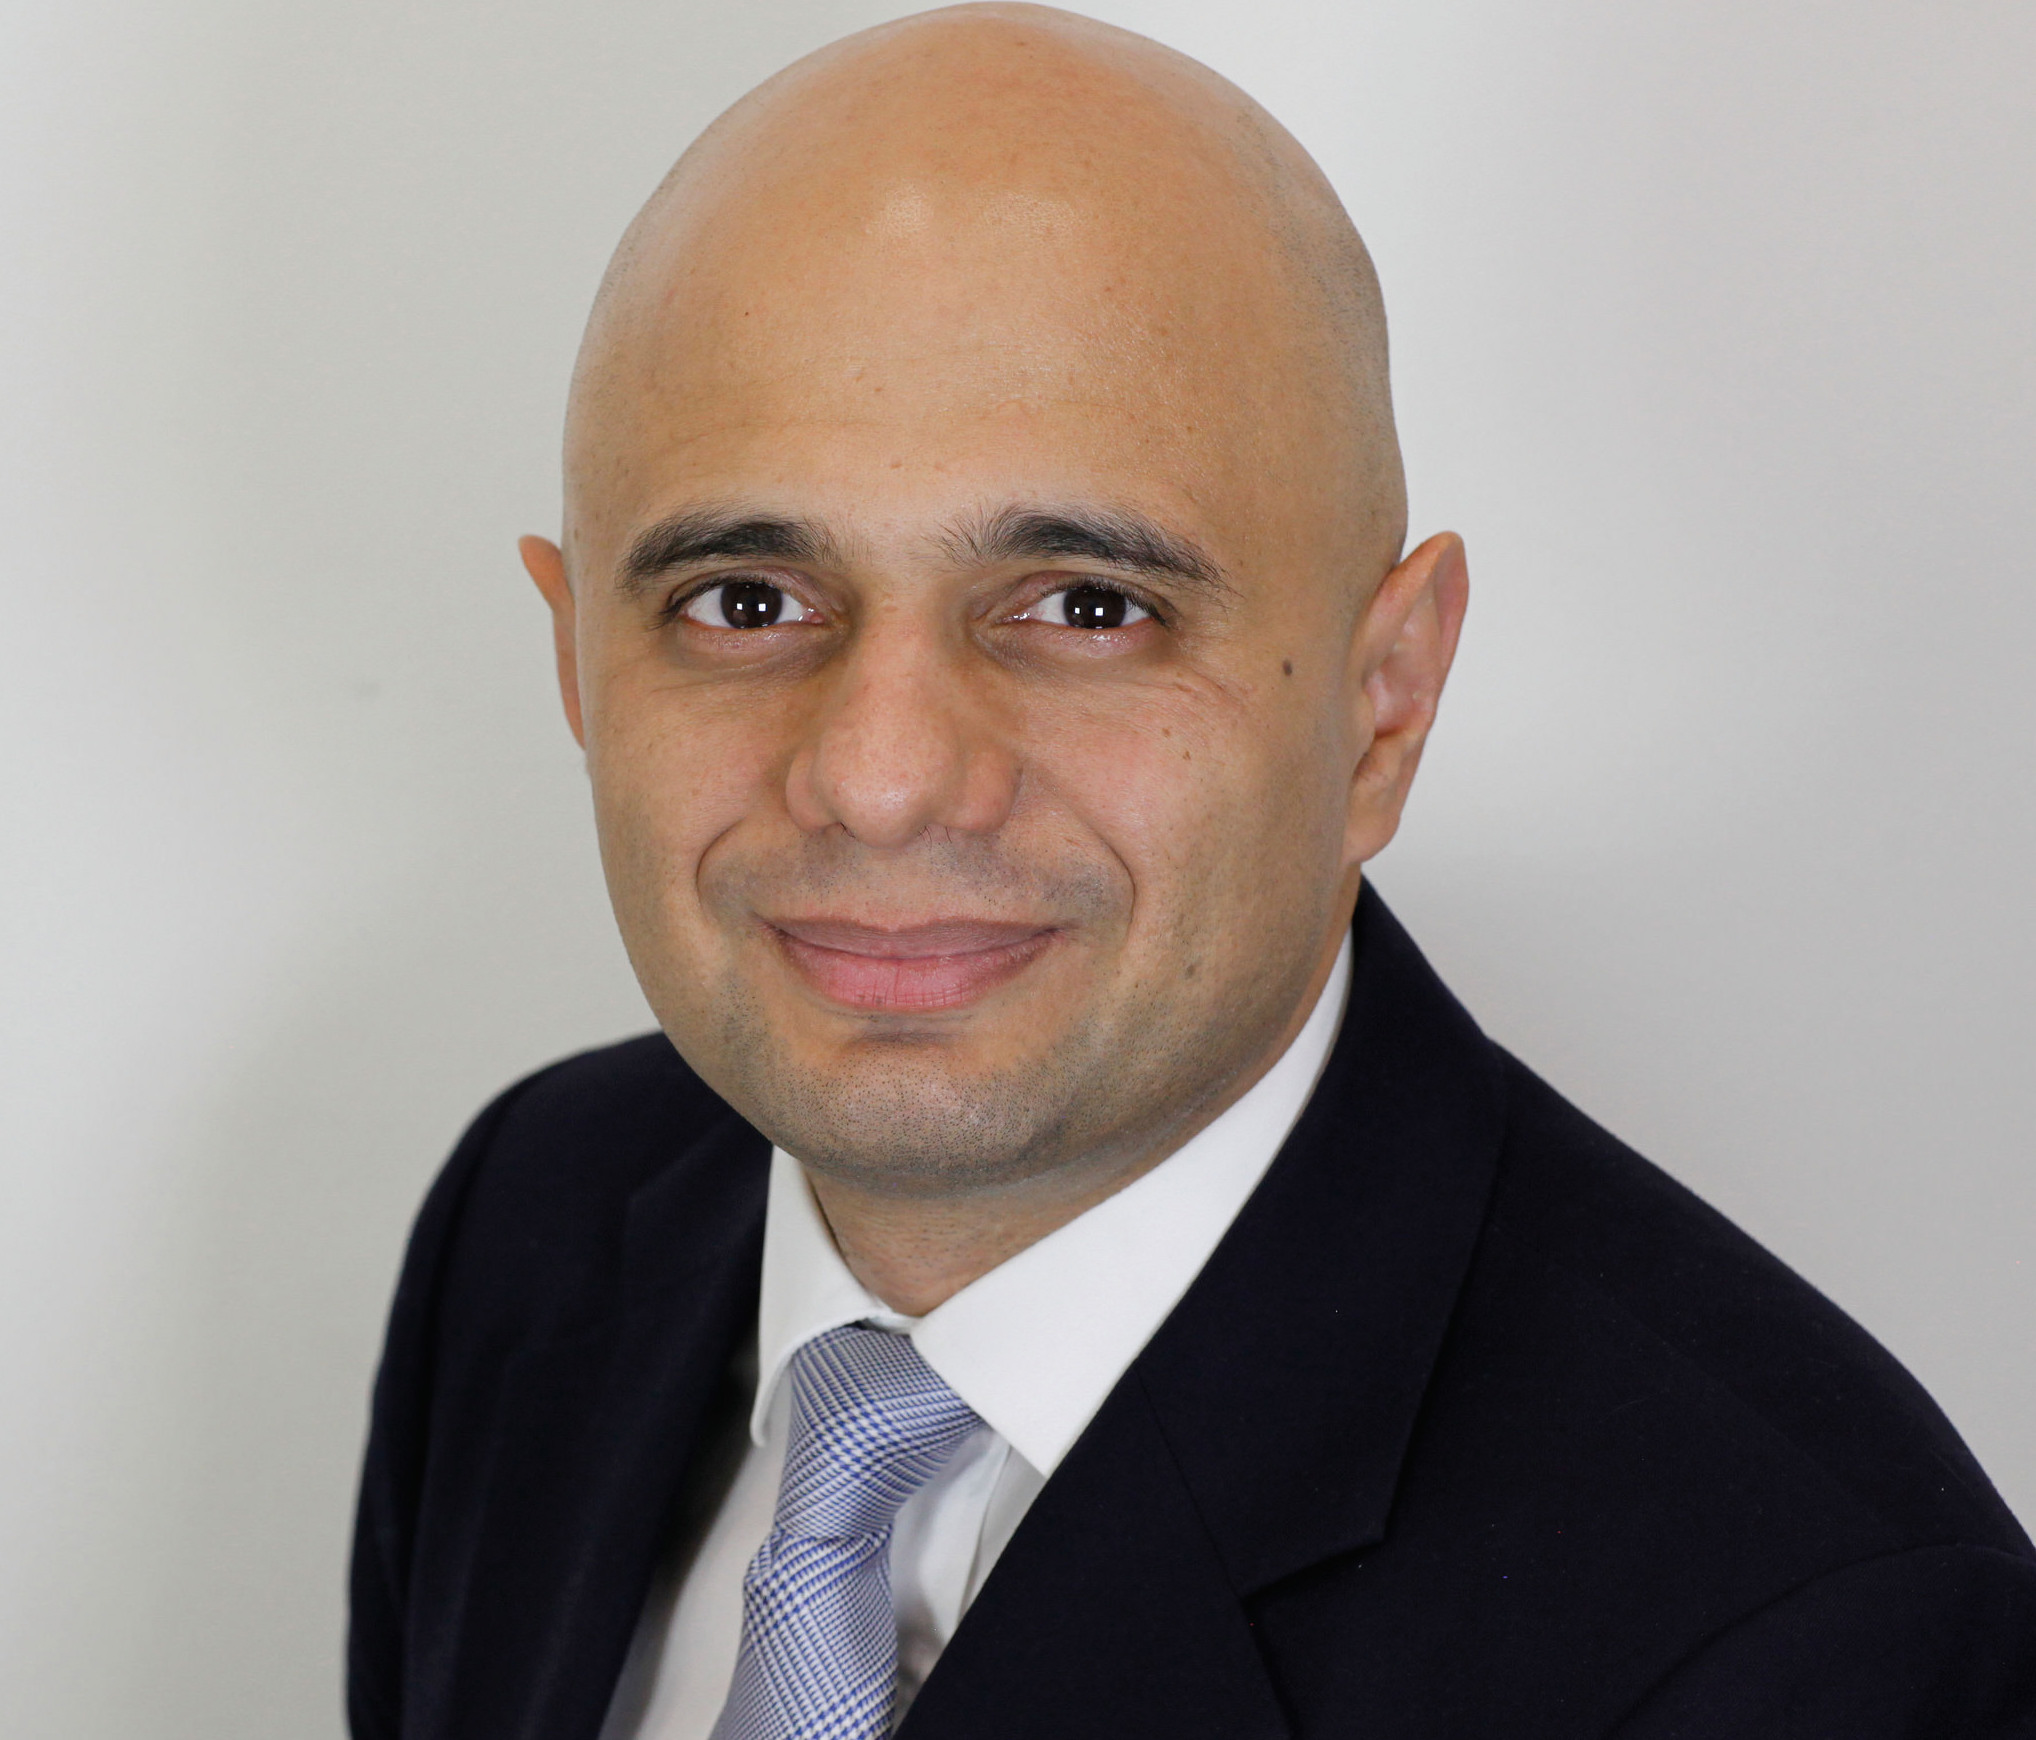 Sajid Javid takes over business secretary role from departing Vince Cable